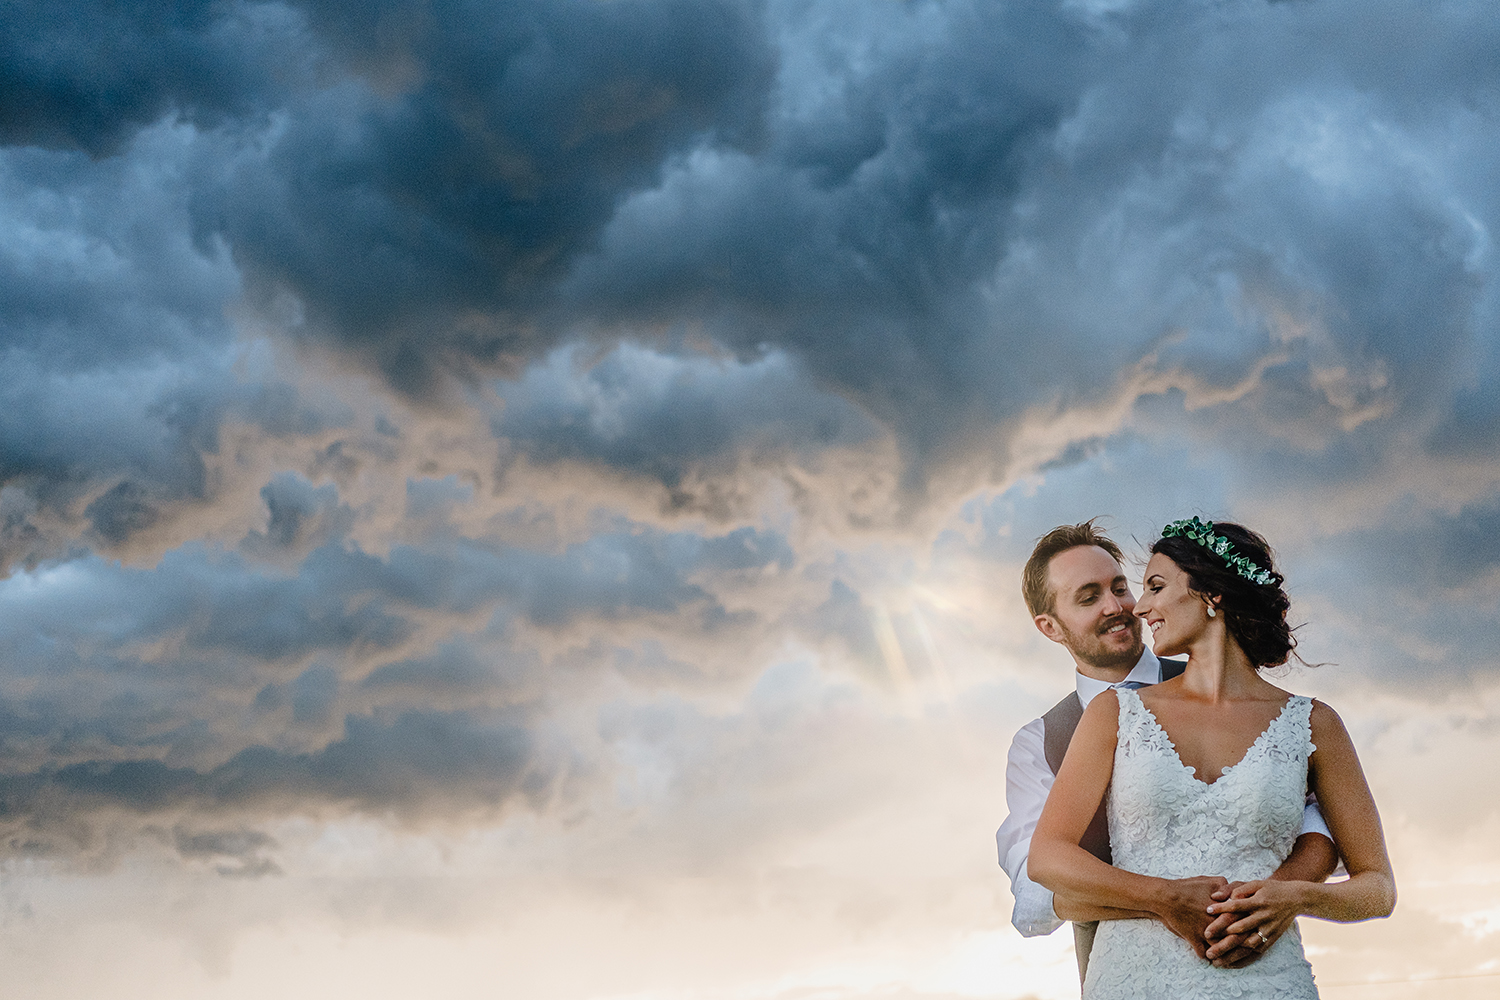 photo of bride and groom with a stormy sky during a metcalfe ontario wedding reception